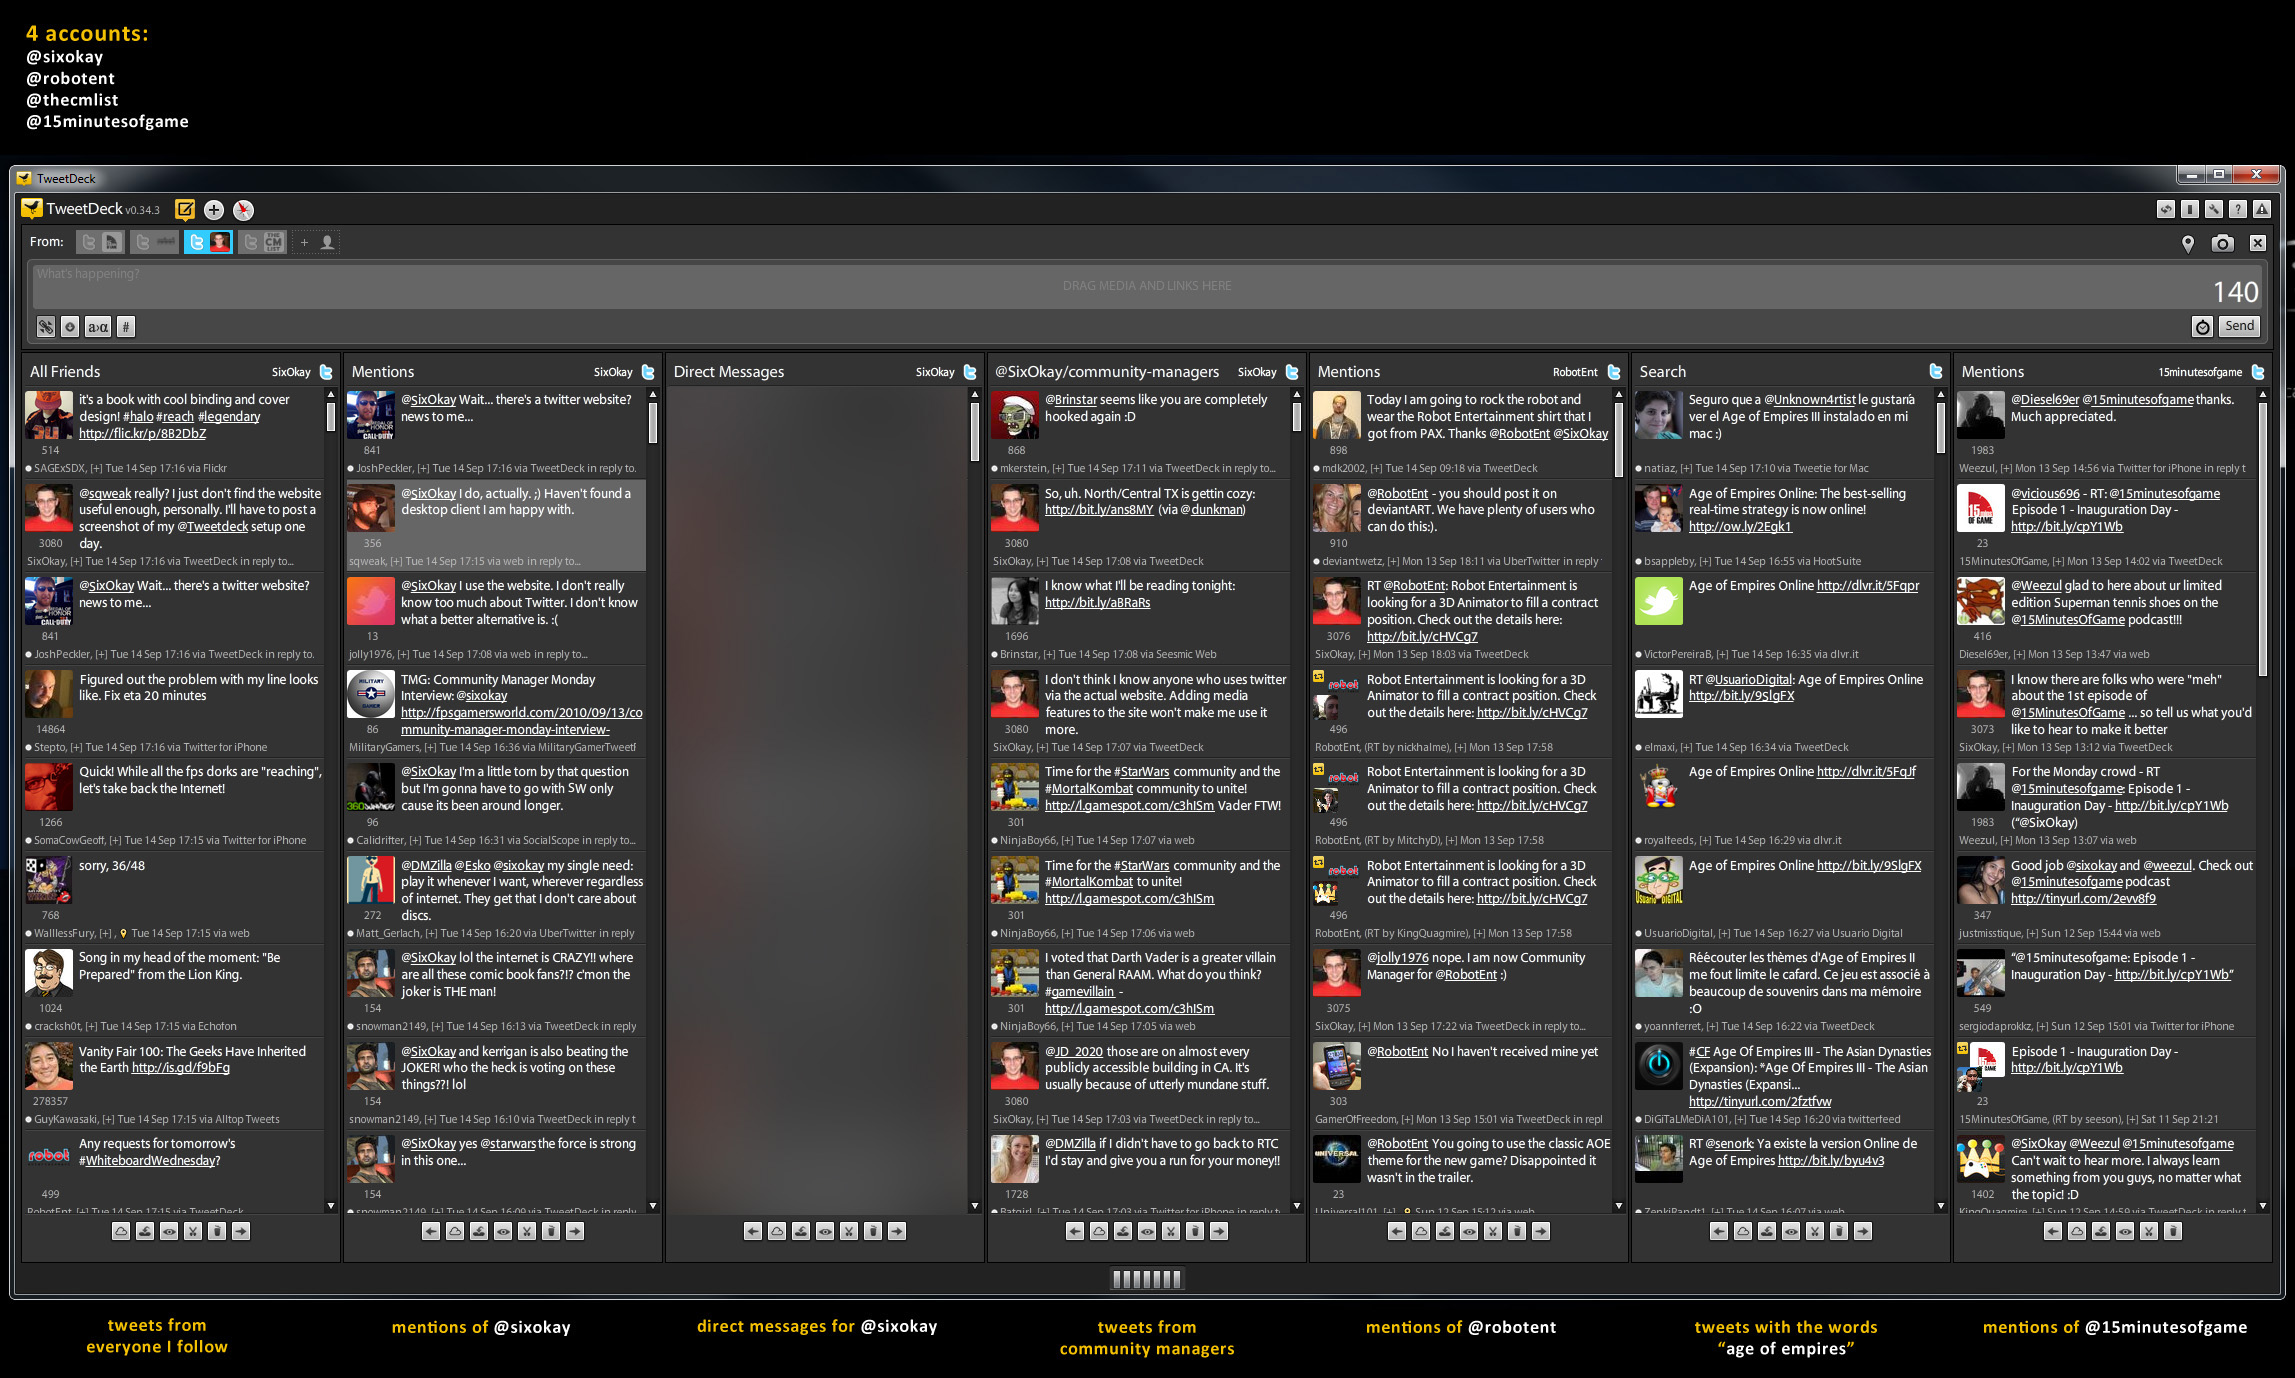 My TweetDeck Layout